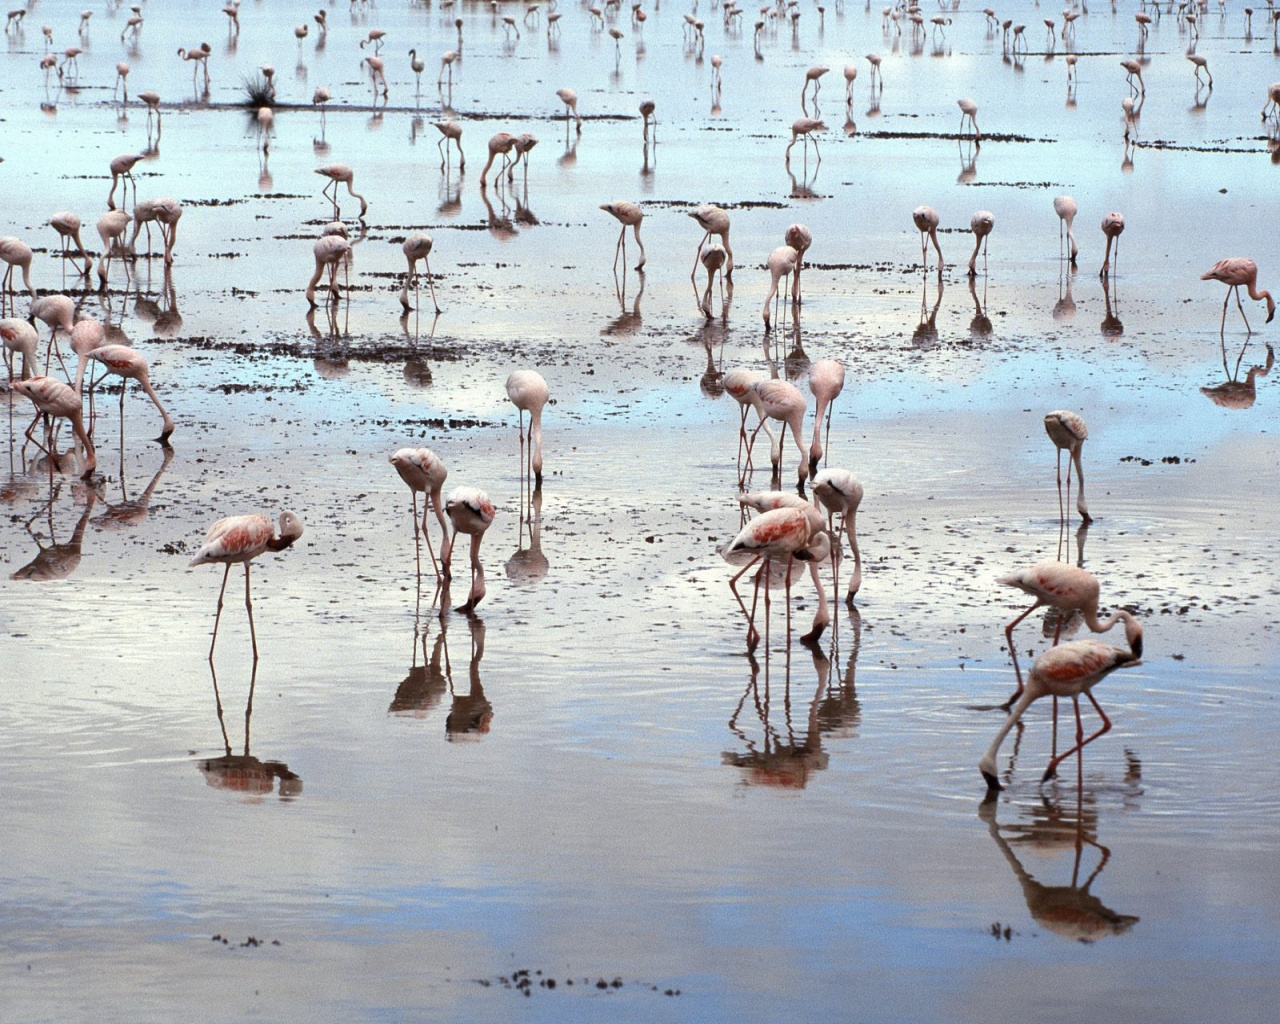 1280x1024 Flamingos on beach